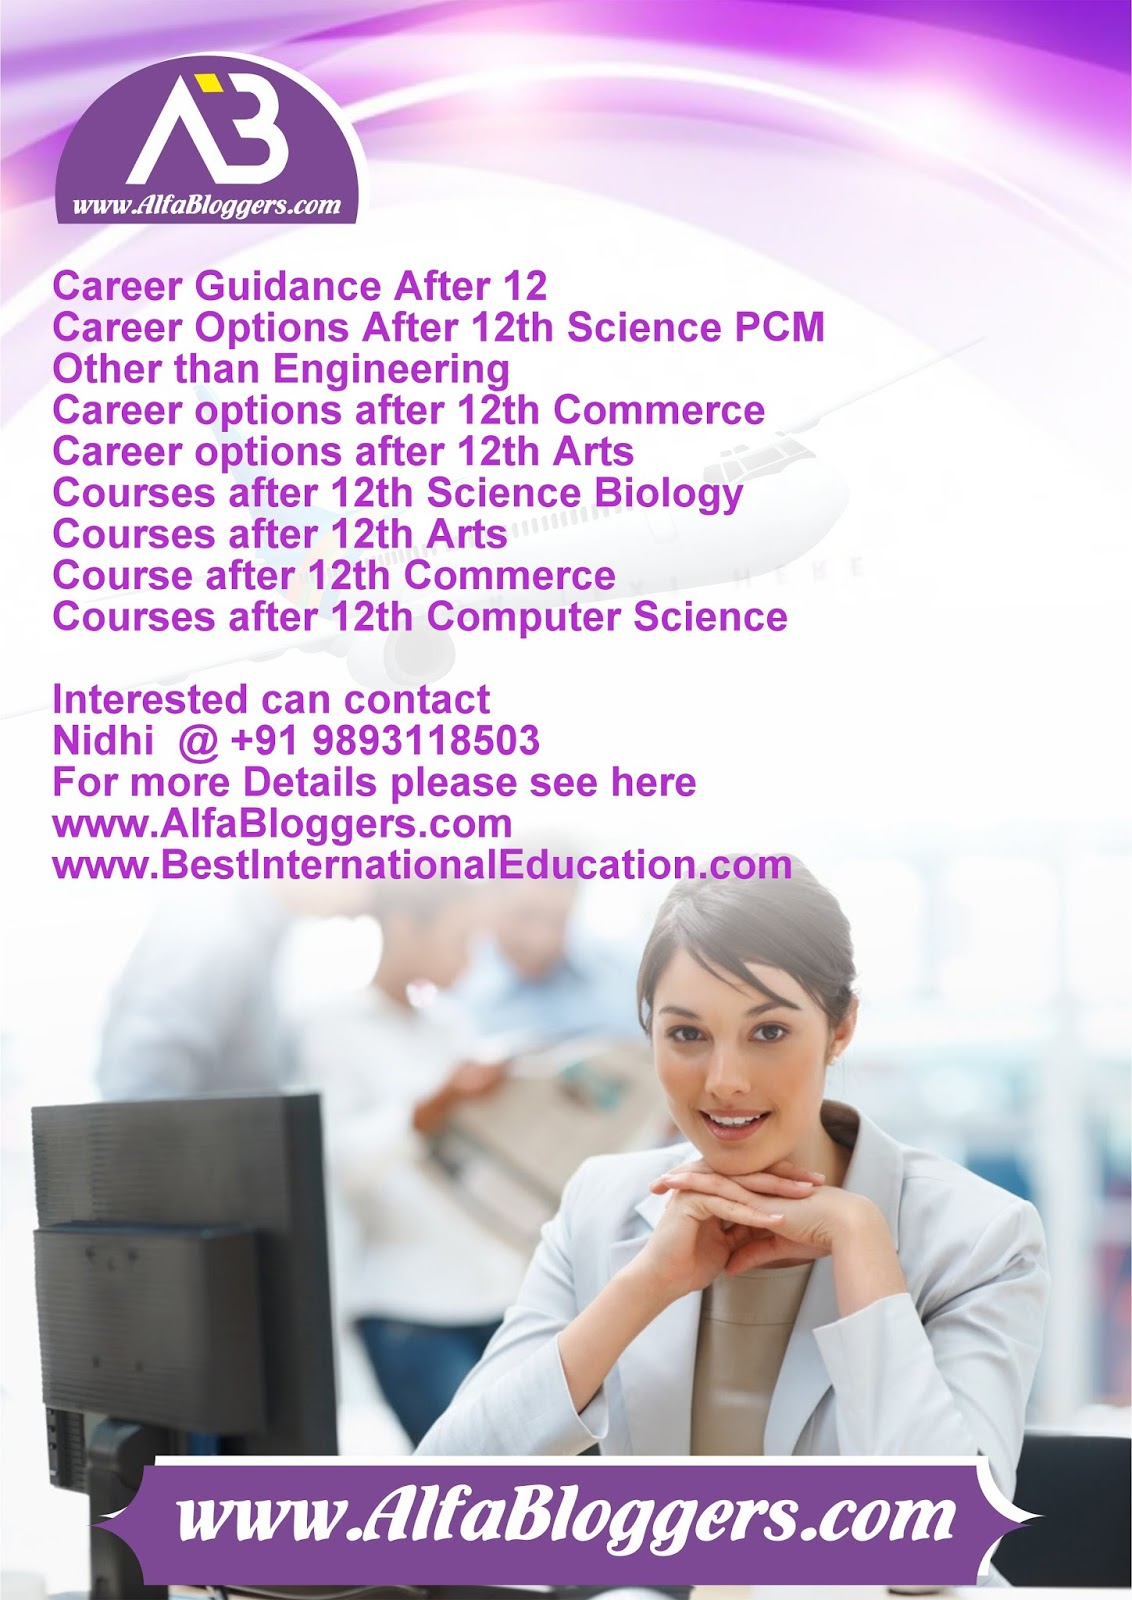 What is the best career option after 12th science